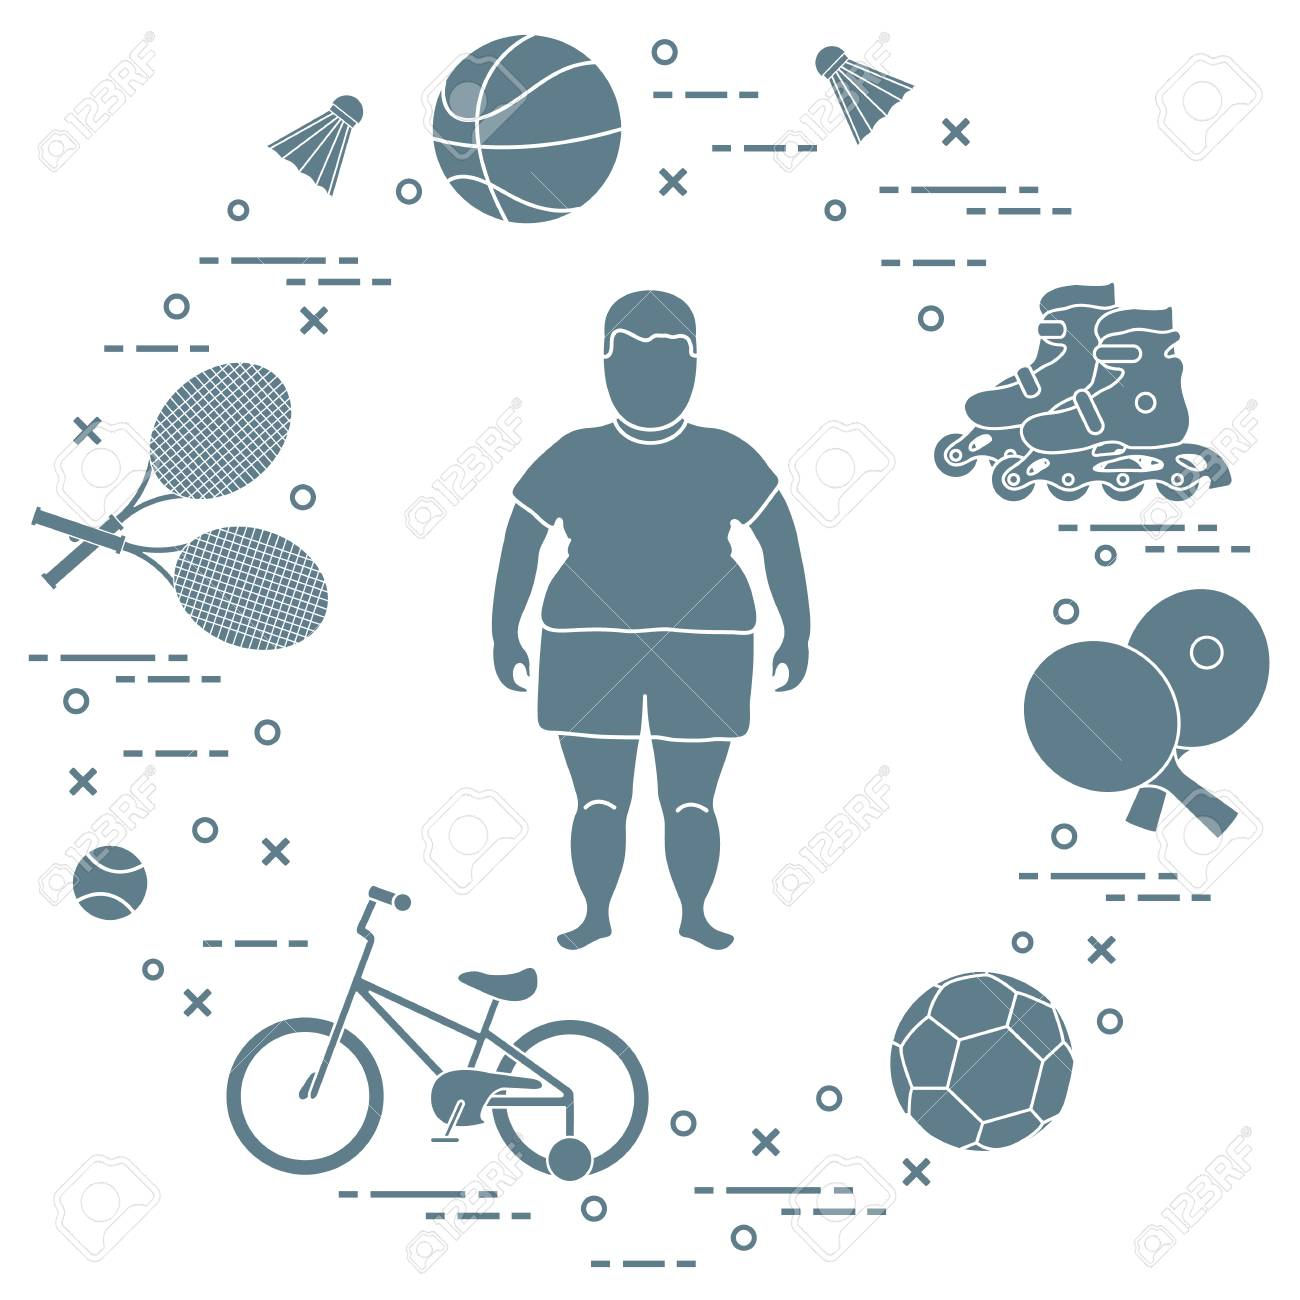 Fat boy, badminton rackets and shuttlecocks, football and basketball balls, rackets and balls for table tennis, kids bicycle, rollers. Sports and healthy lifestyle from childhood. - 102884327